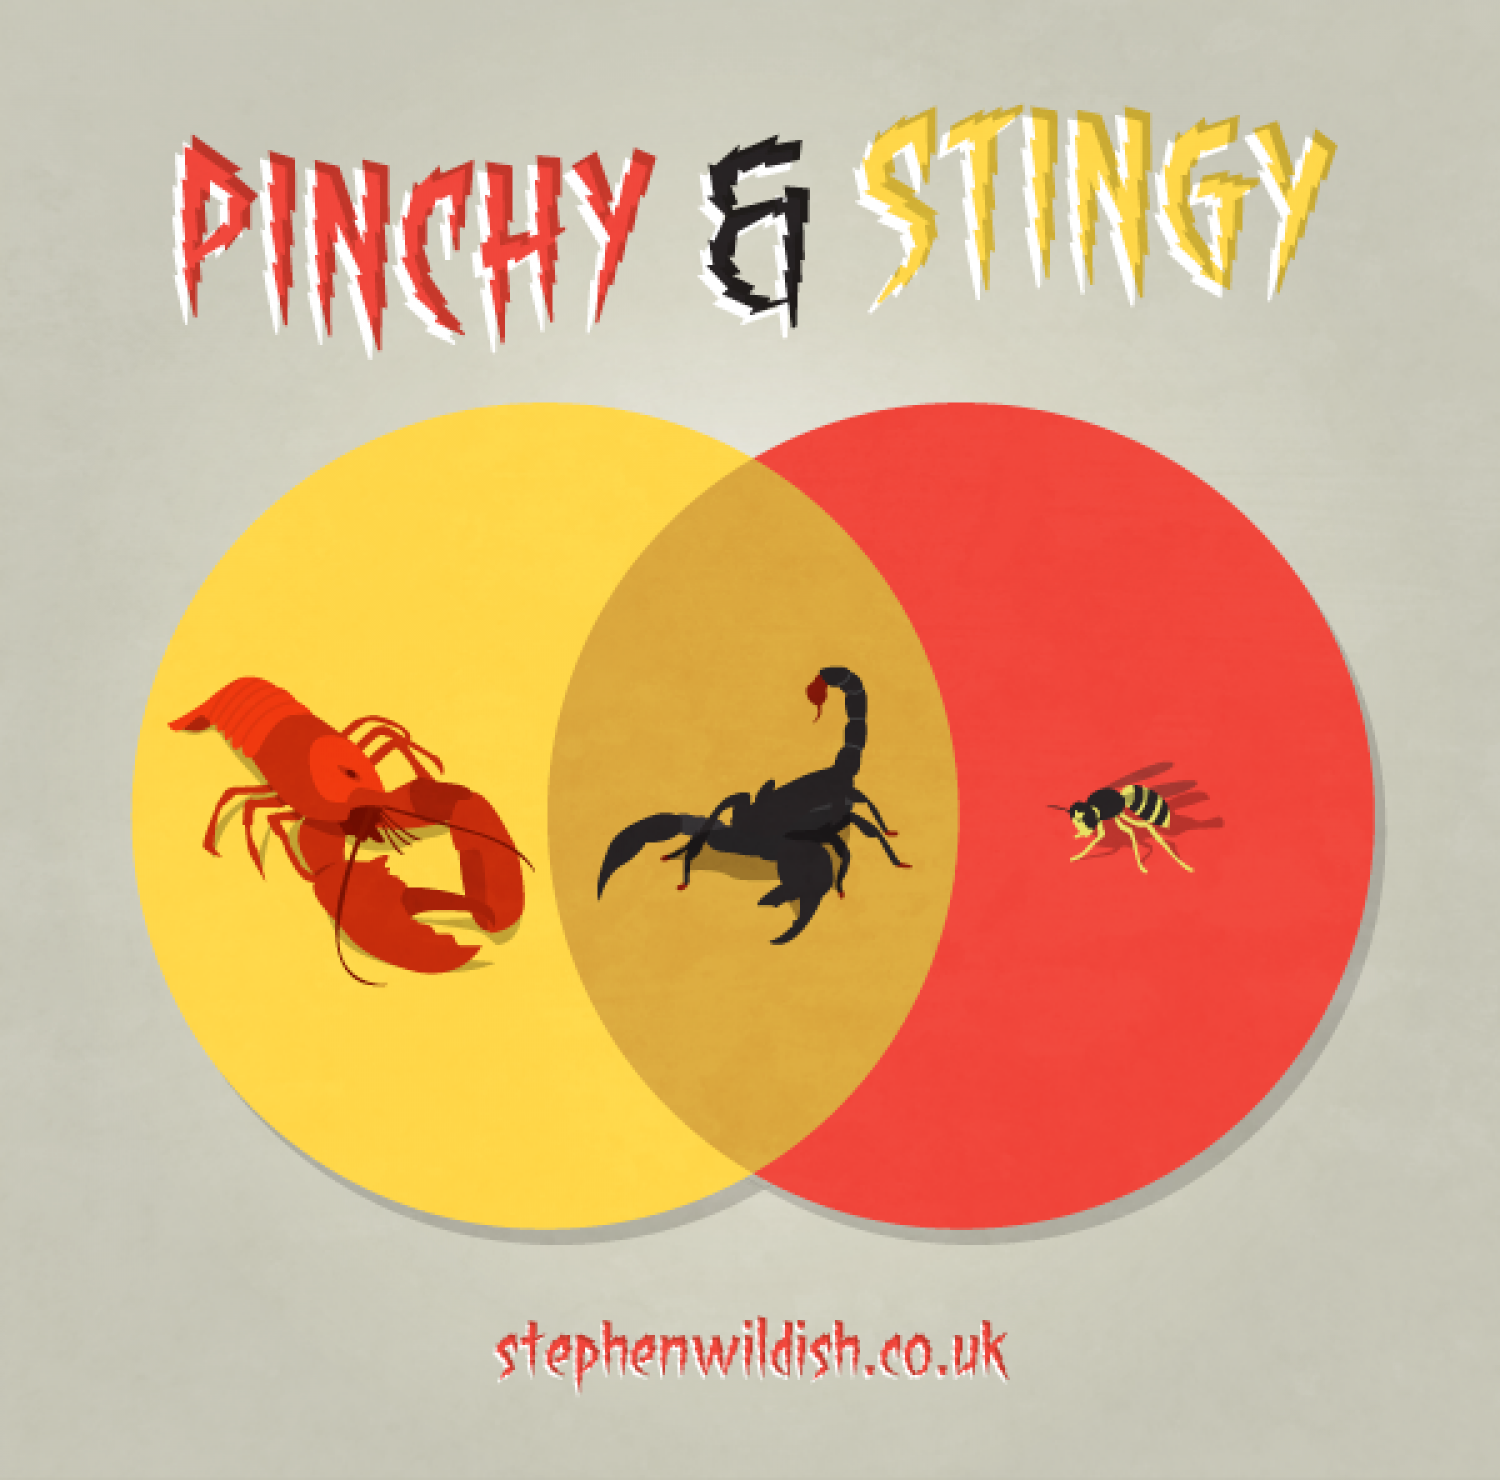 Pinchy & Stingy Infographic